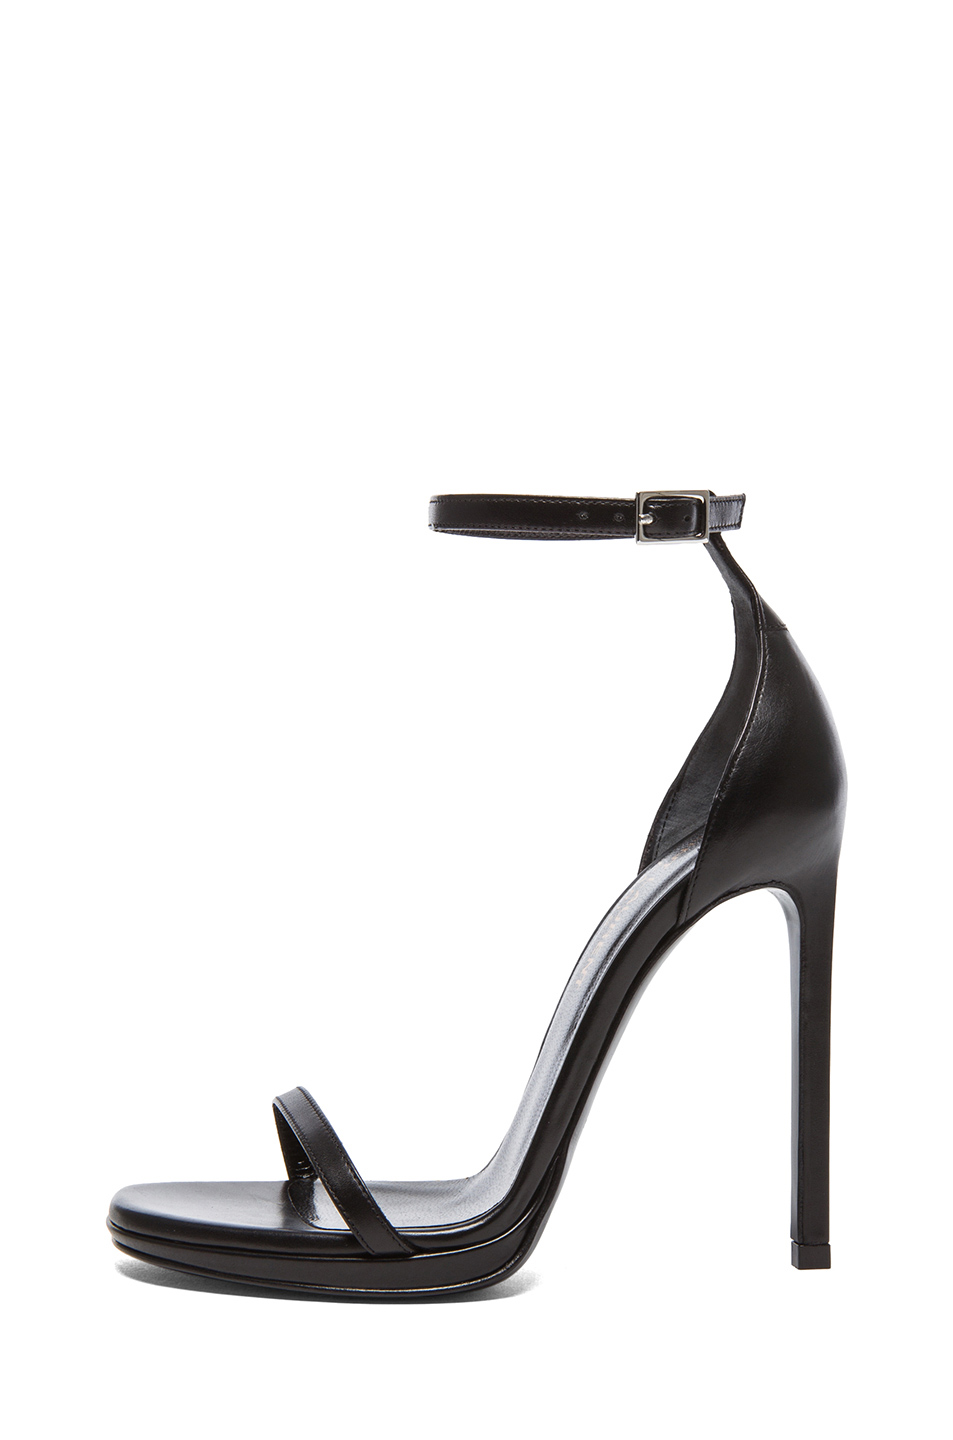 Saint Laurent|Jane Leather Ankle Strap Sandal in Black